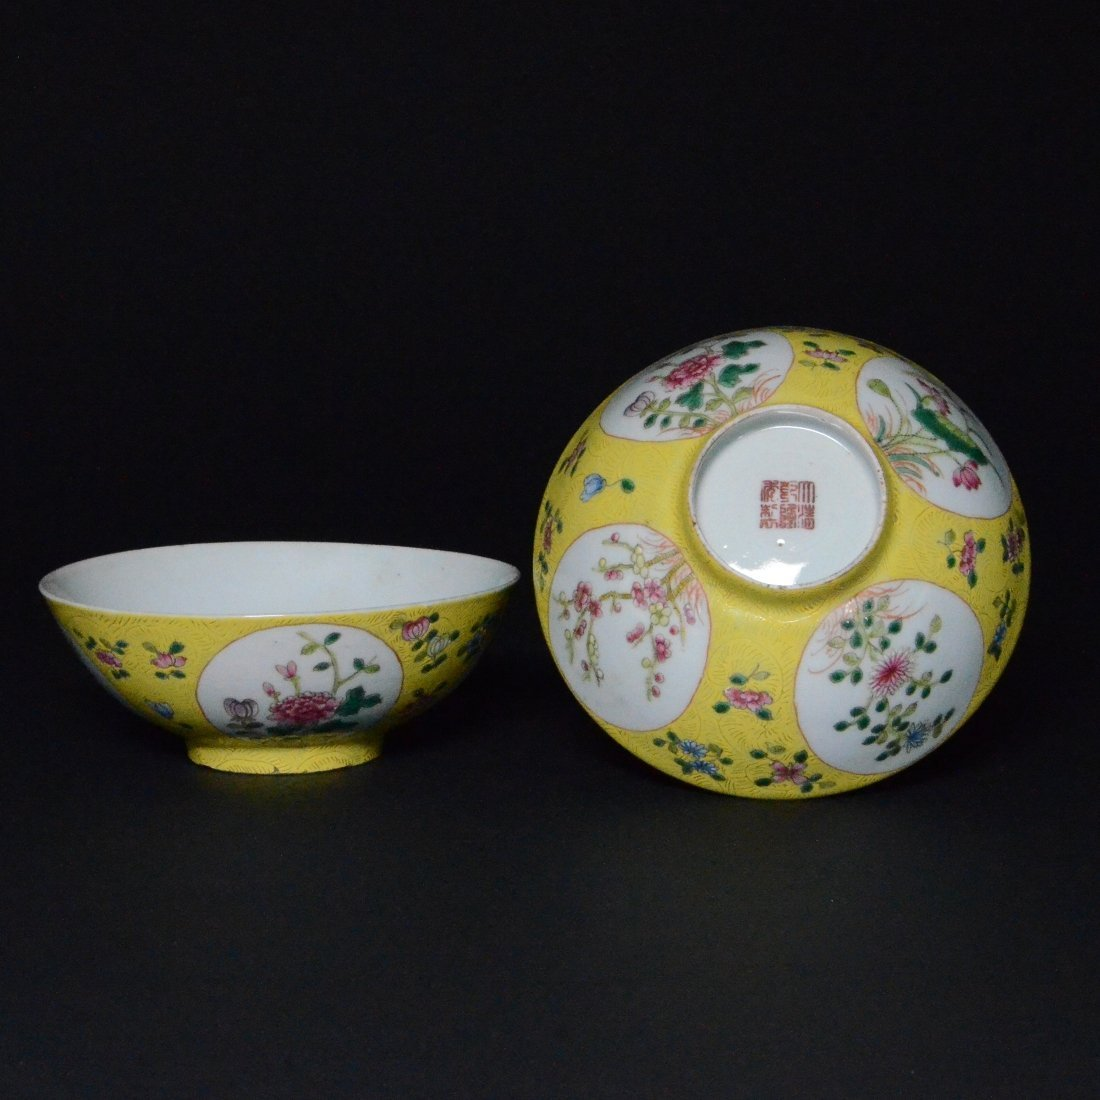 21: PAIR OF YELLOW FAMILLE ROSE PORCELAIN BOWLS